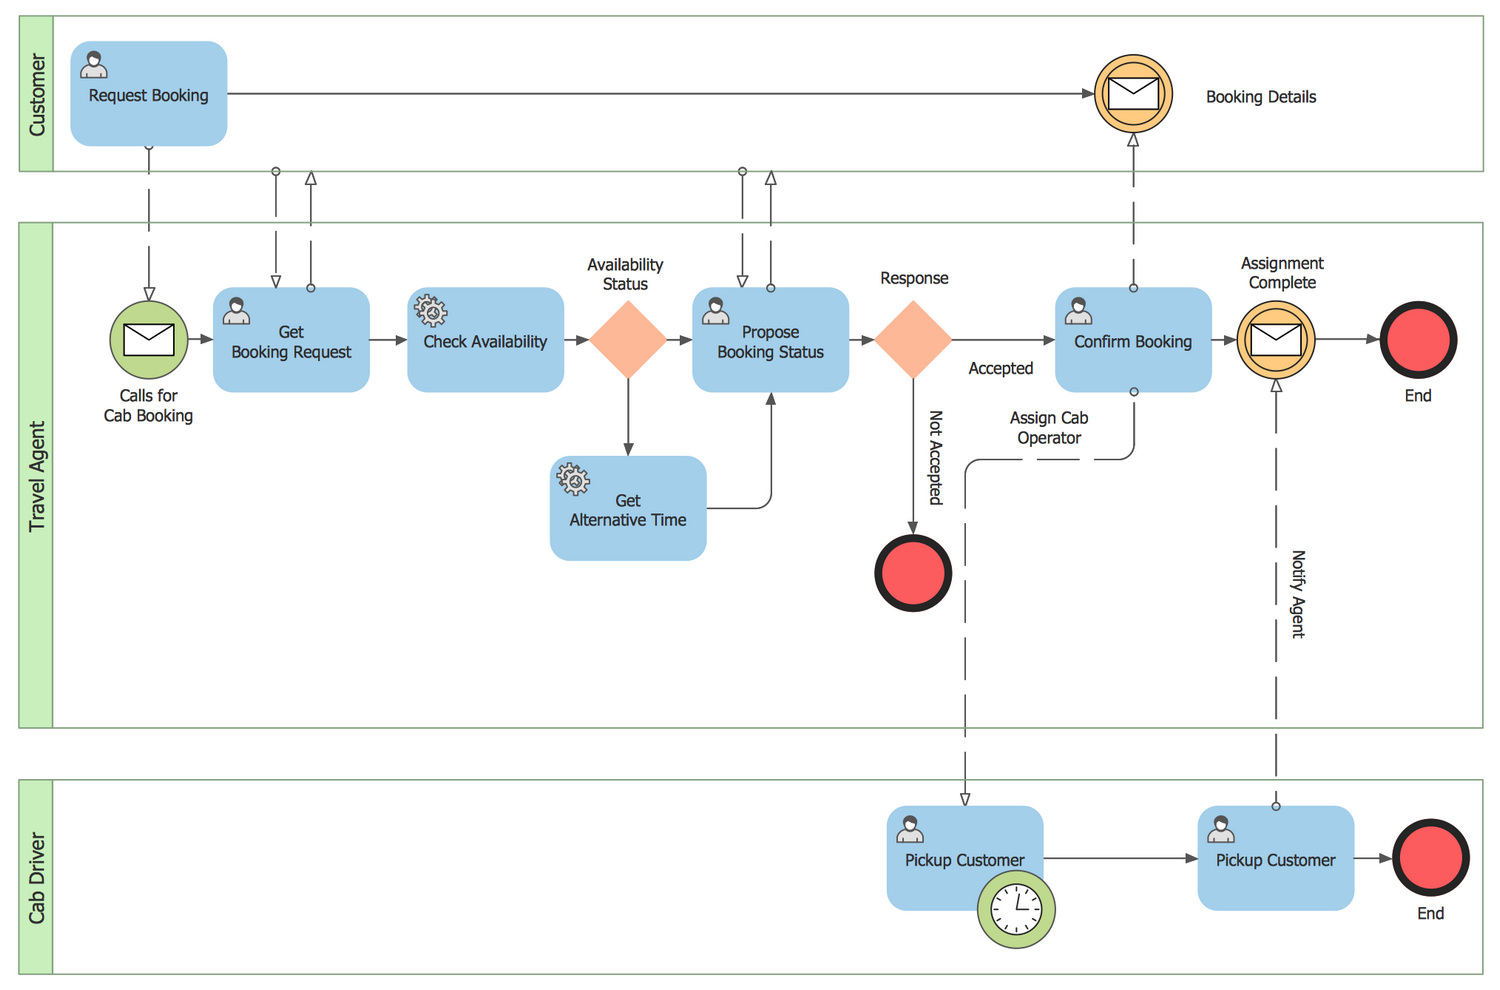 Public Process for Cab Booking Collaboration BPMN 2.0 Diagram